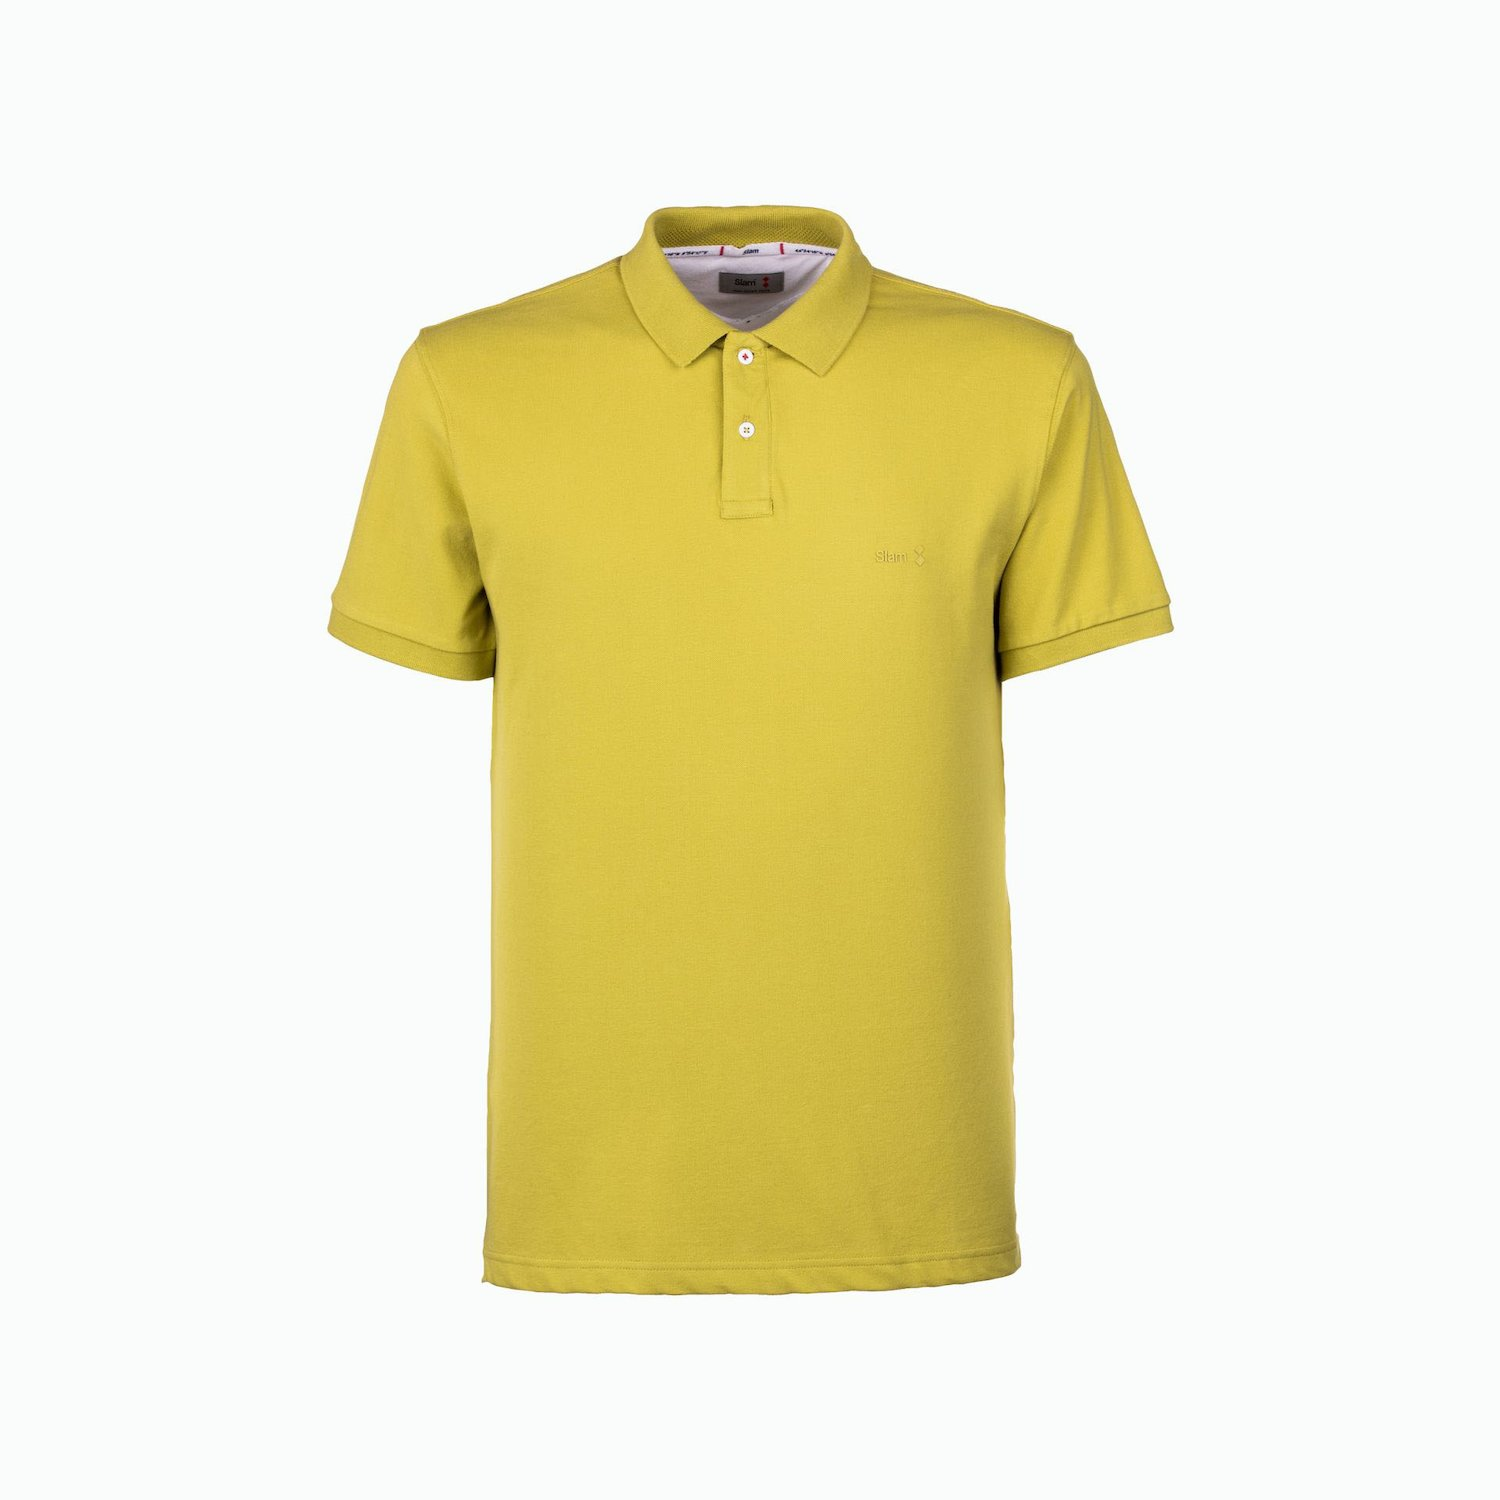 New Caboose Polo - Citronelle